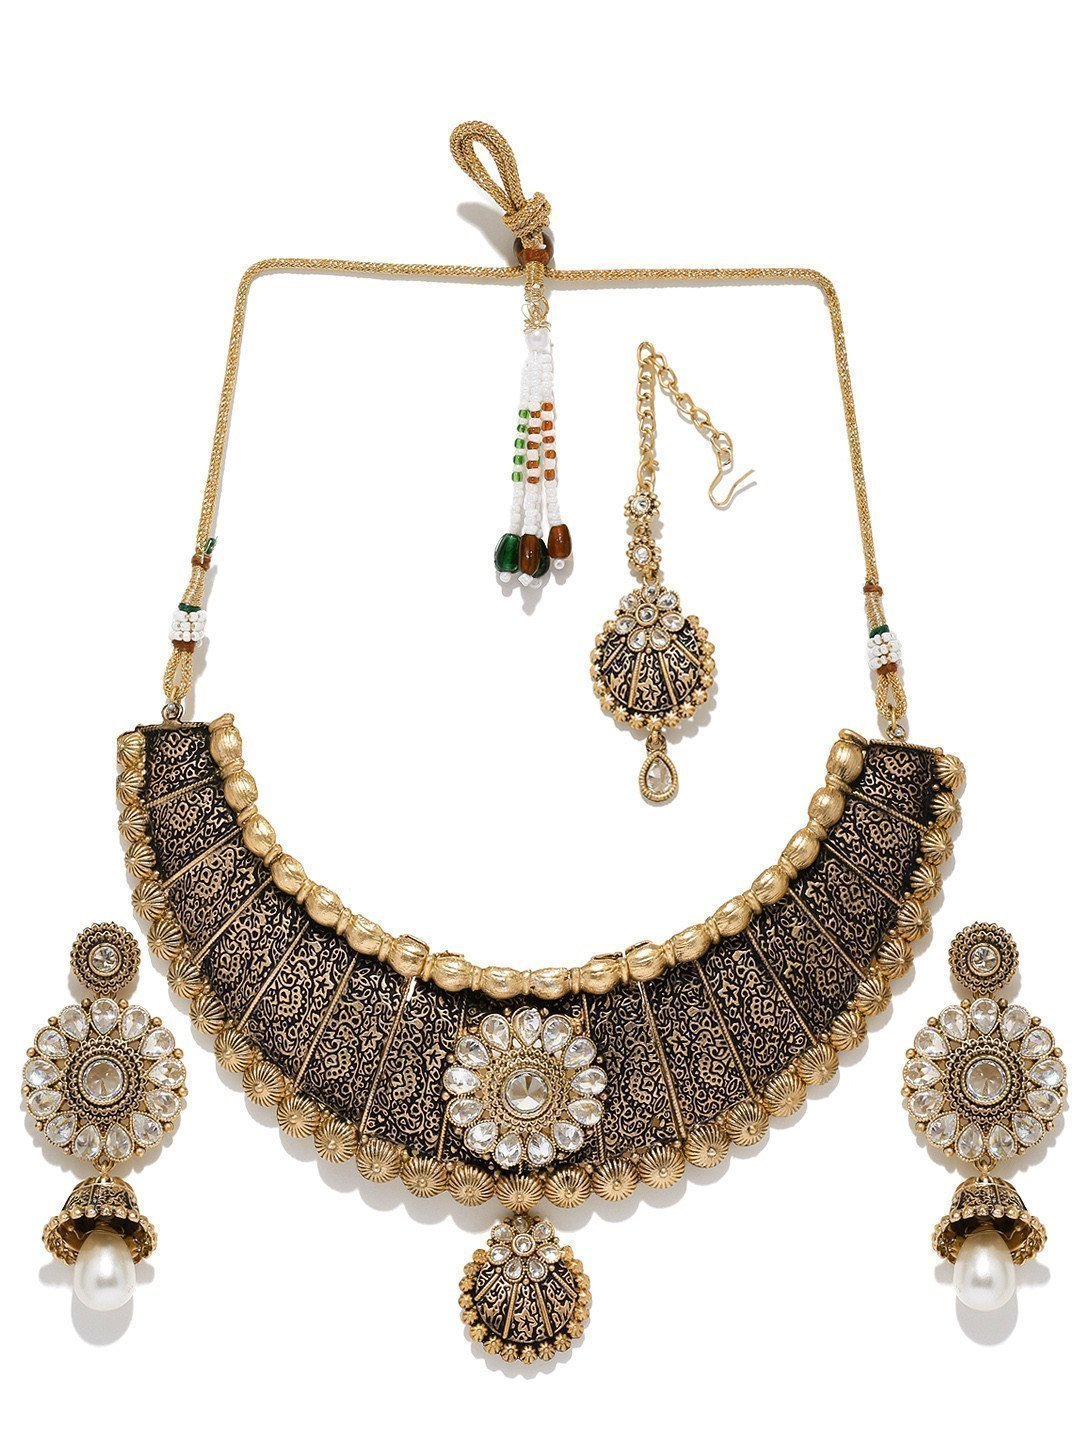 Finely Detailed Wedding Collection Necklace Set With Maangtika - Zpfk5870